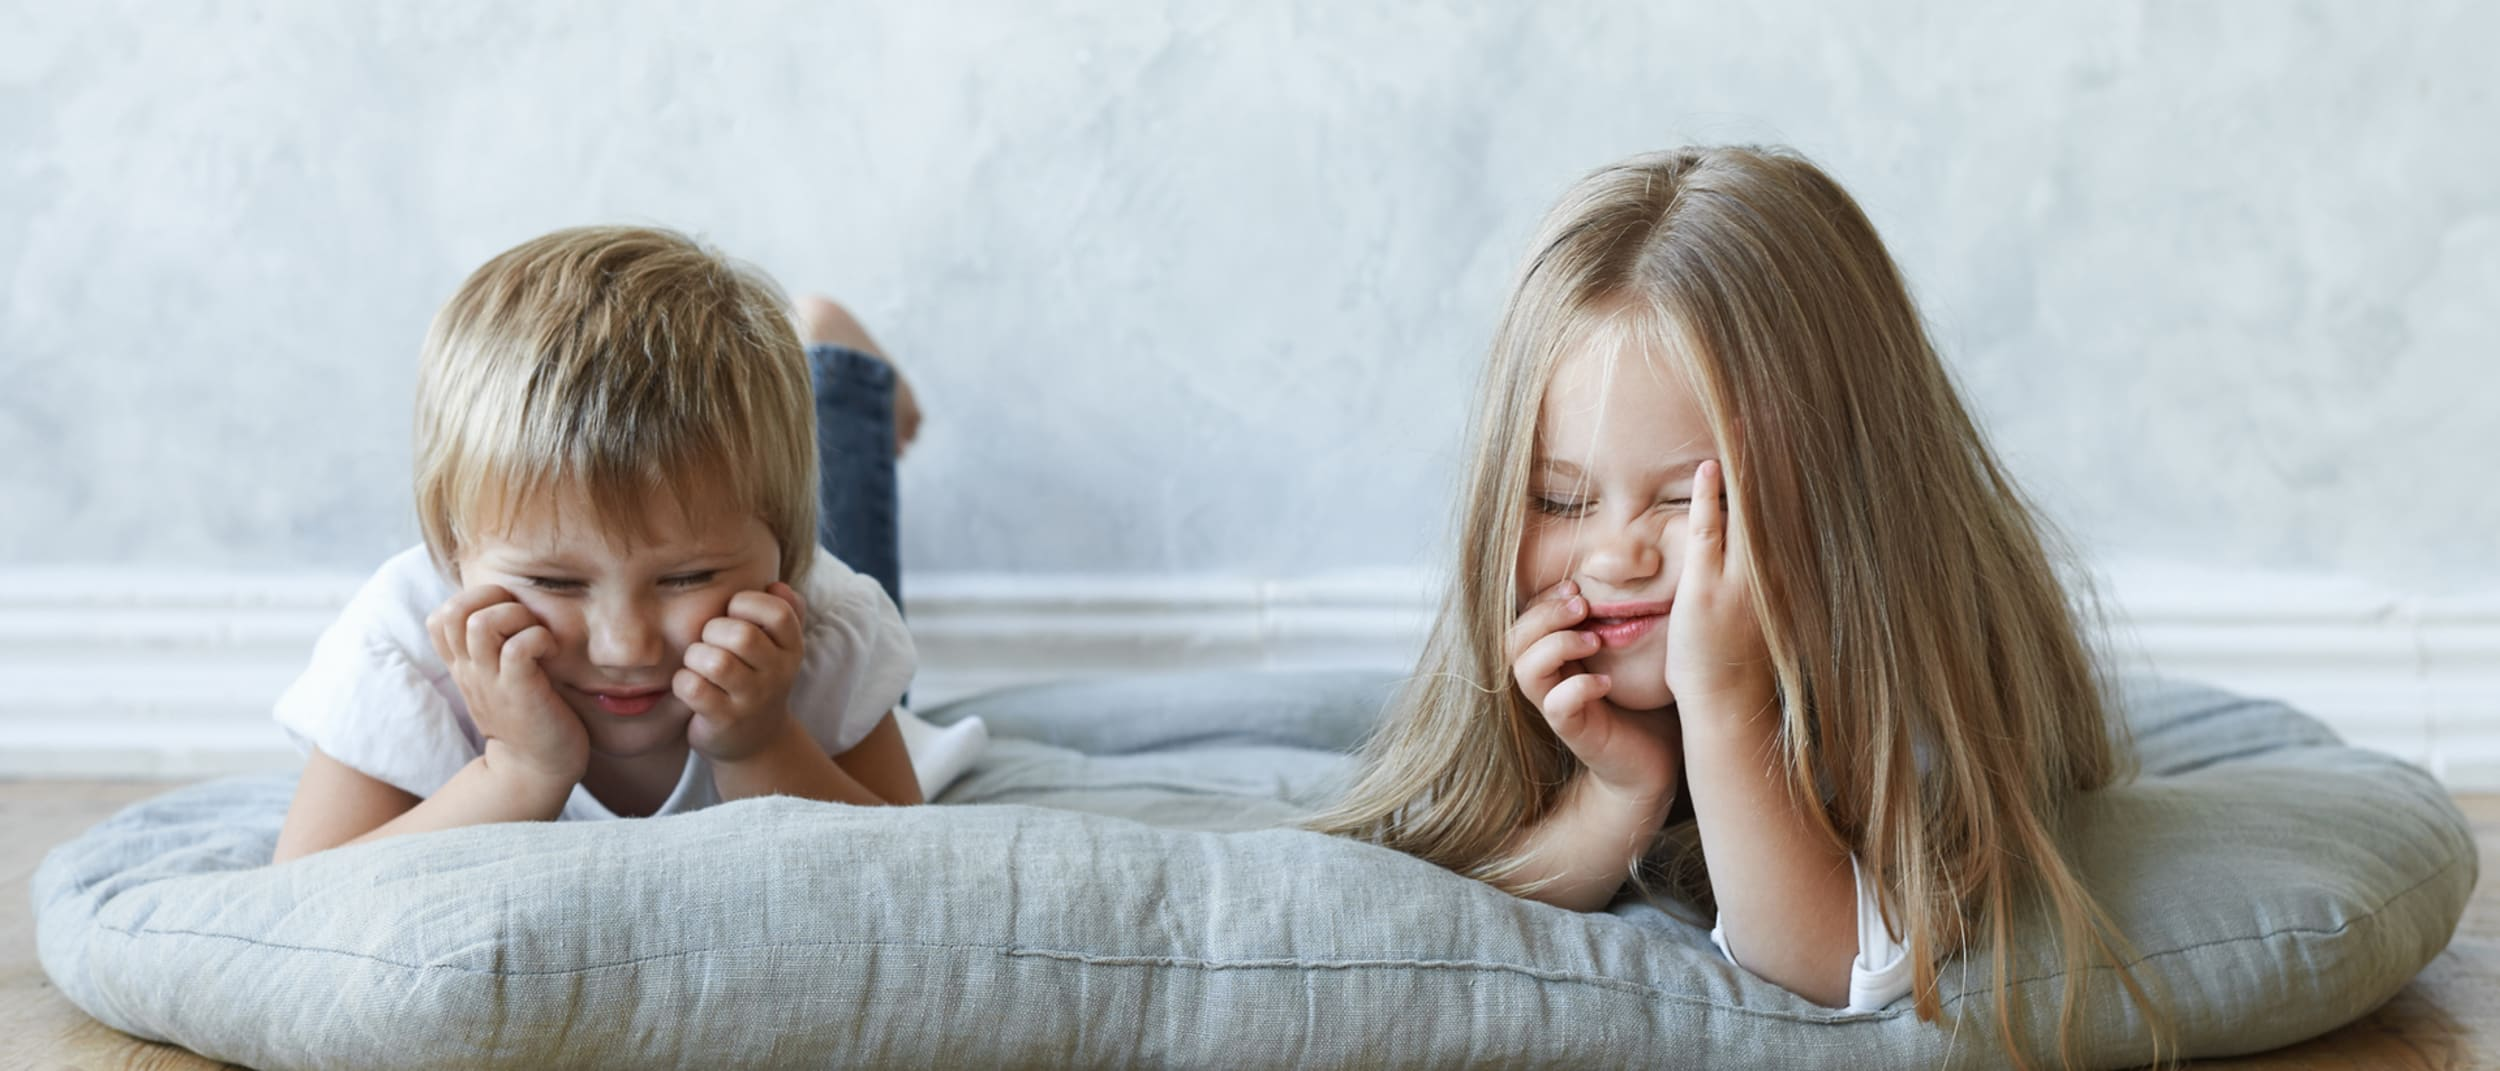 4 boredom busters for restless kids